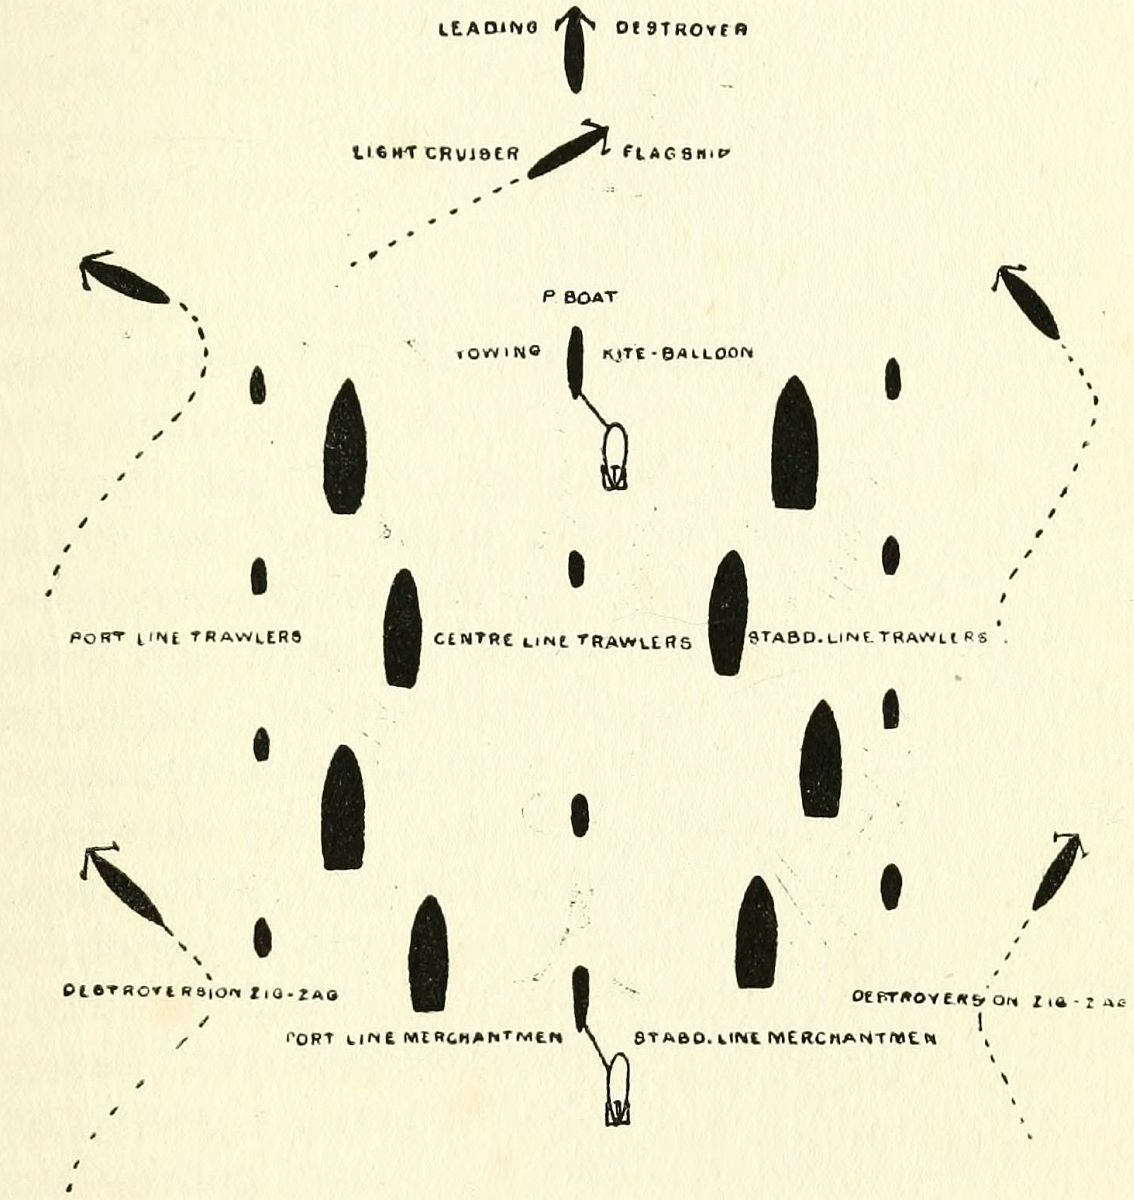 The Convoy System Of Wwi By Sea